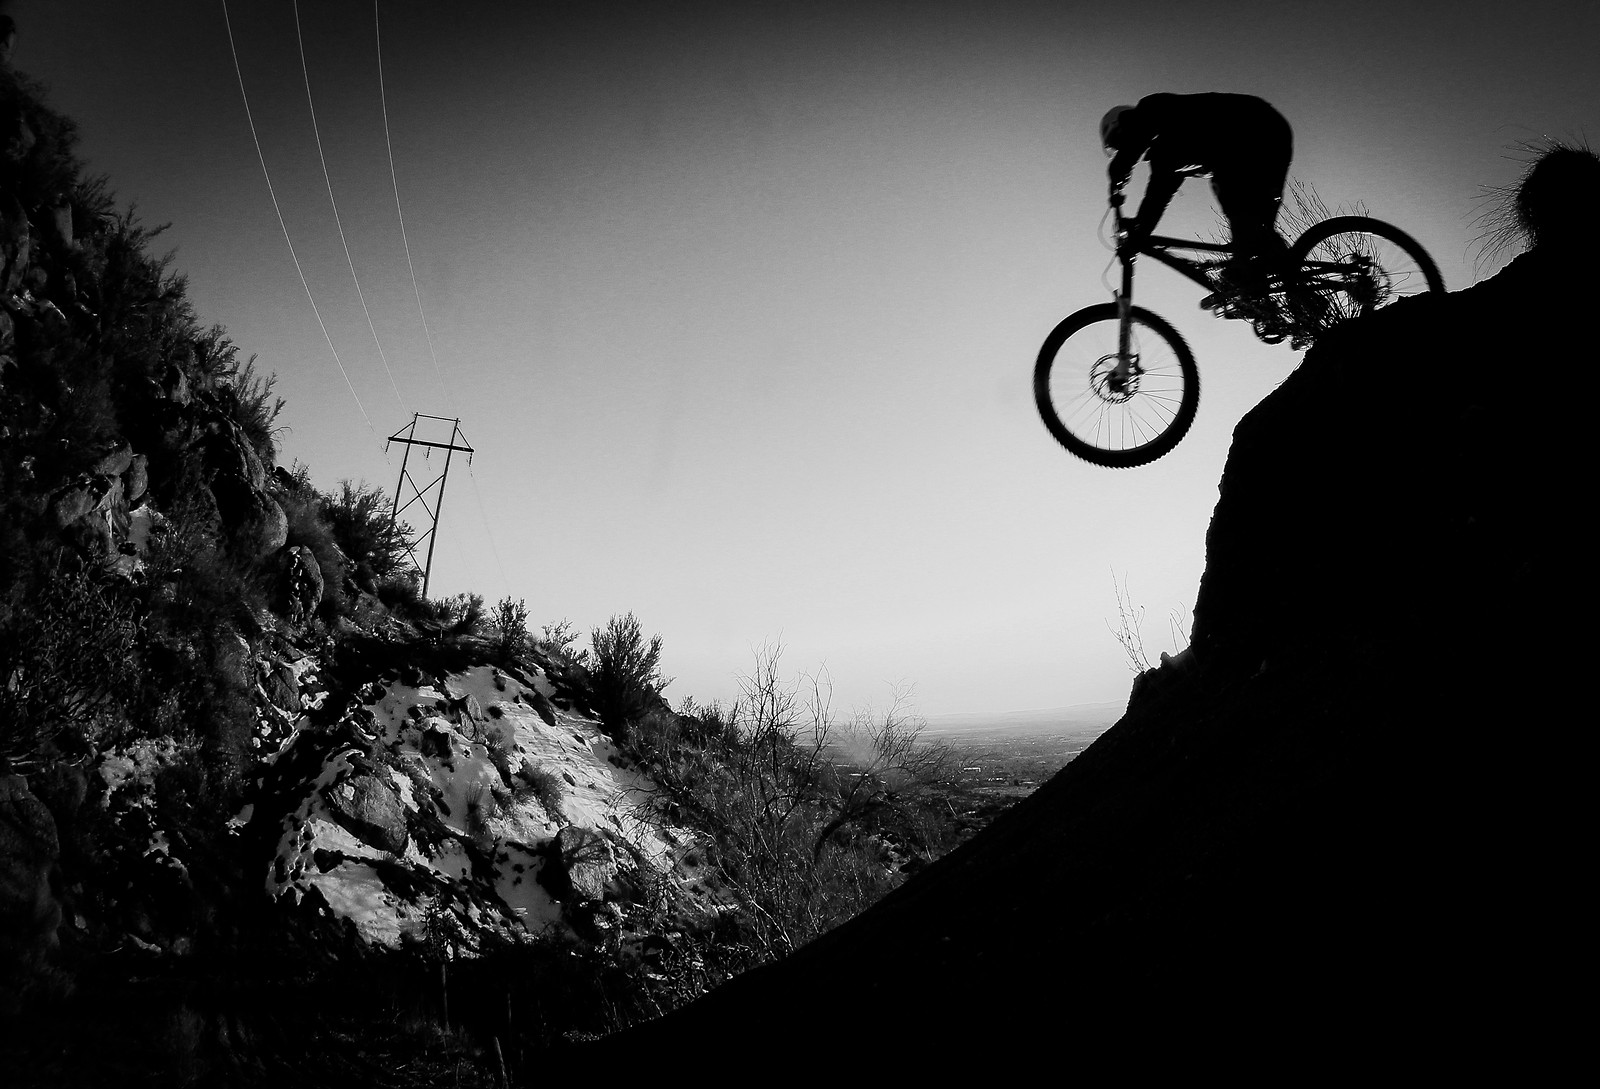 Nothing Drop BW SP - jerryhazard - Mountain Biking Pictures - Vital MTB